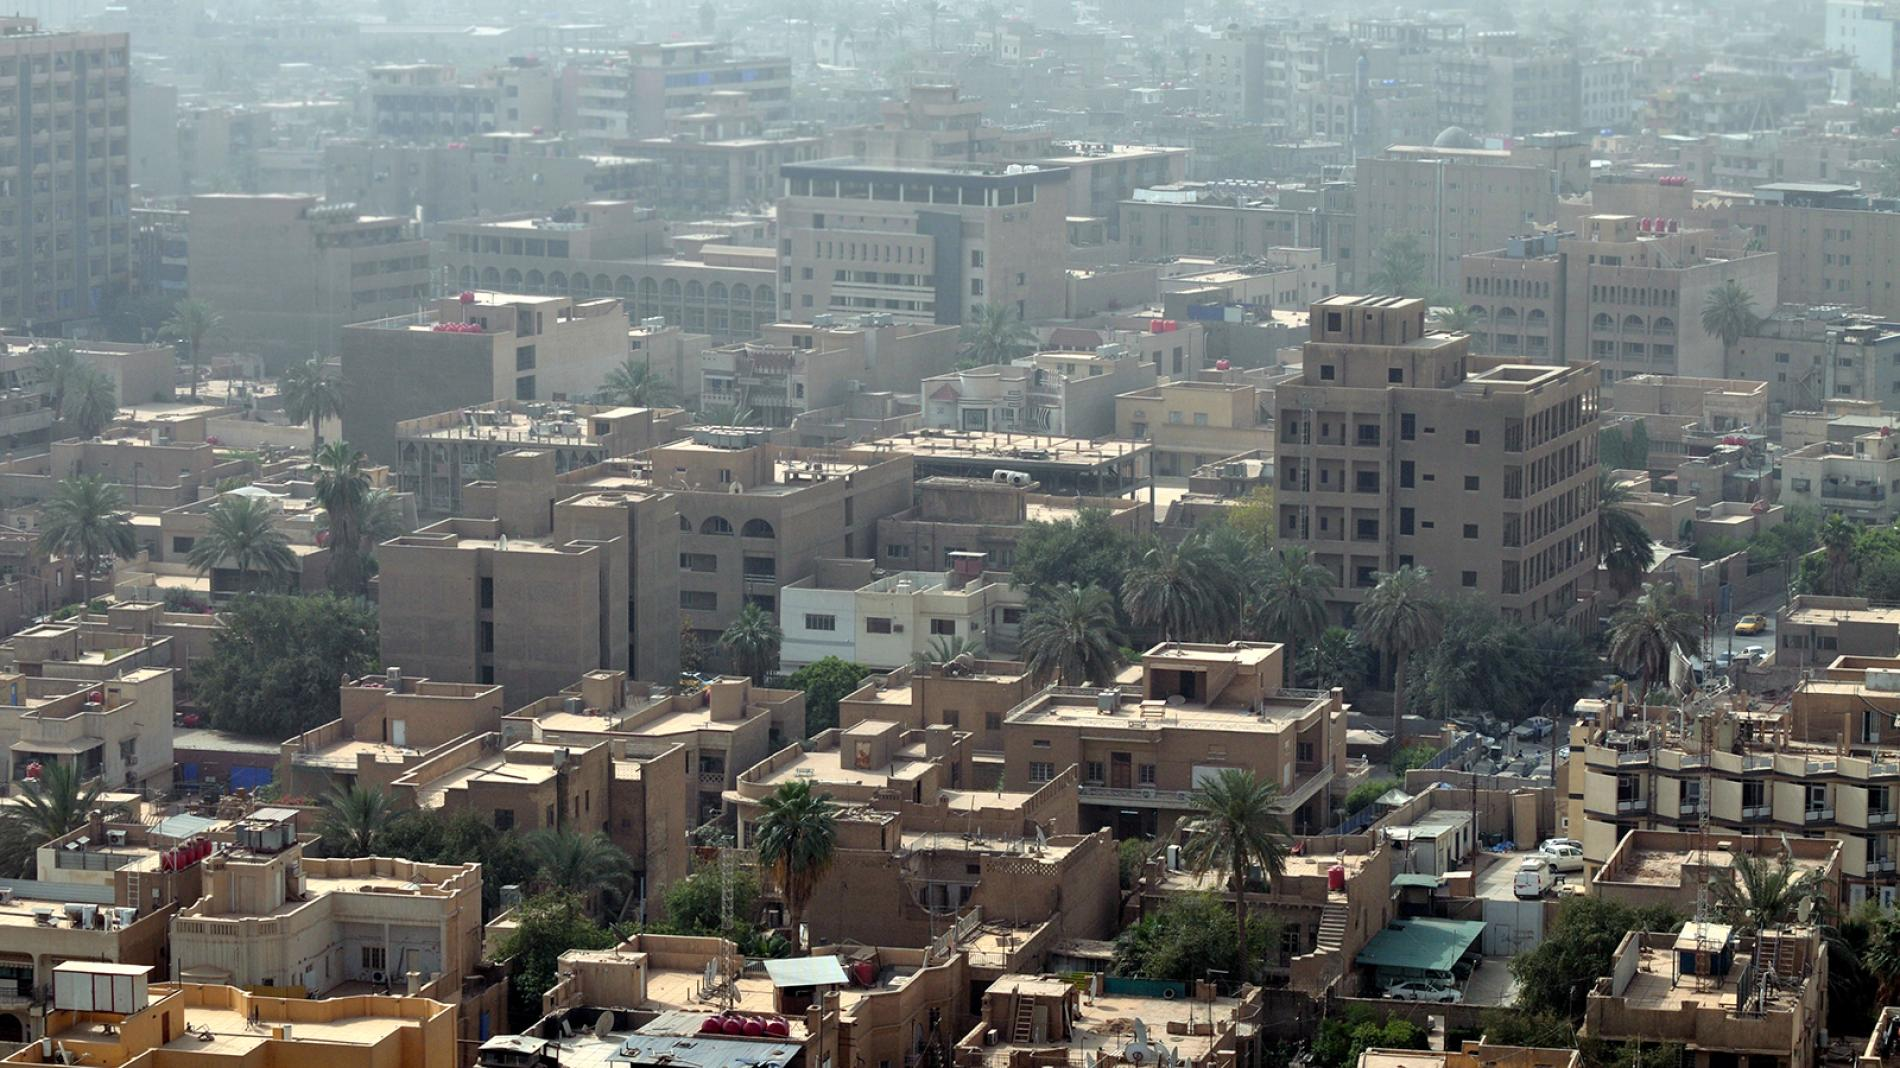 iraq-cityscape.ngsversion.1396531672270.adapt.1900.1